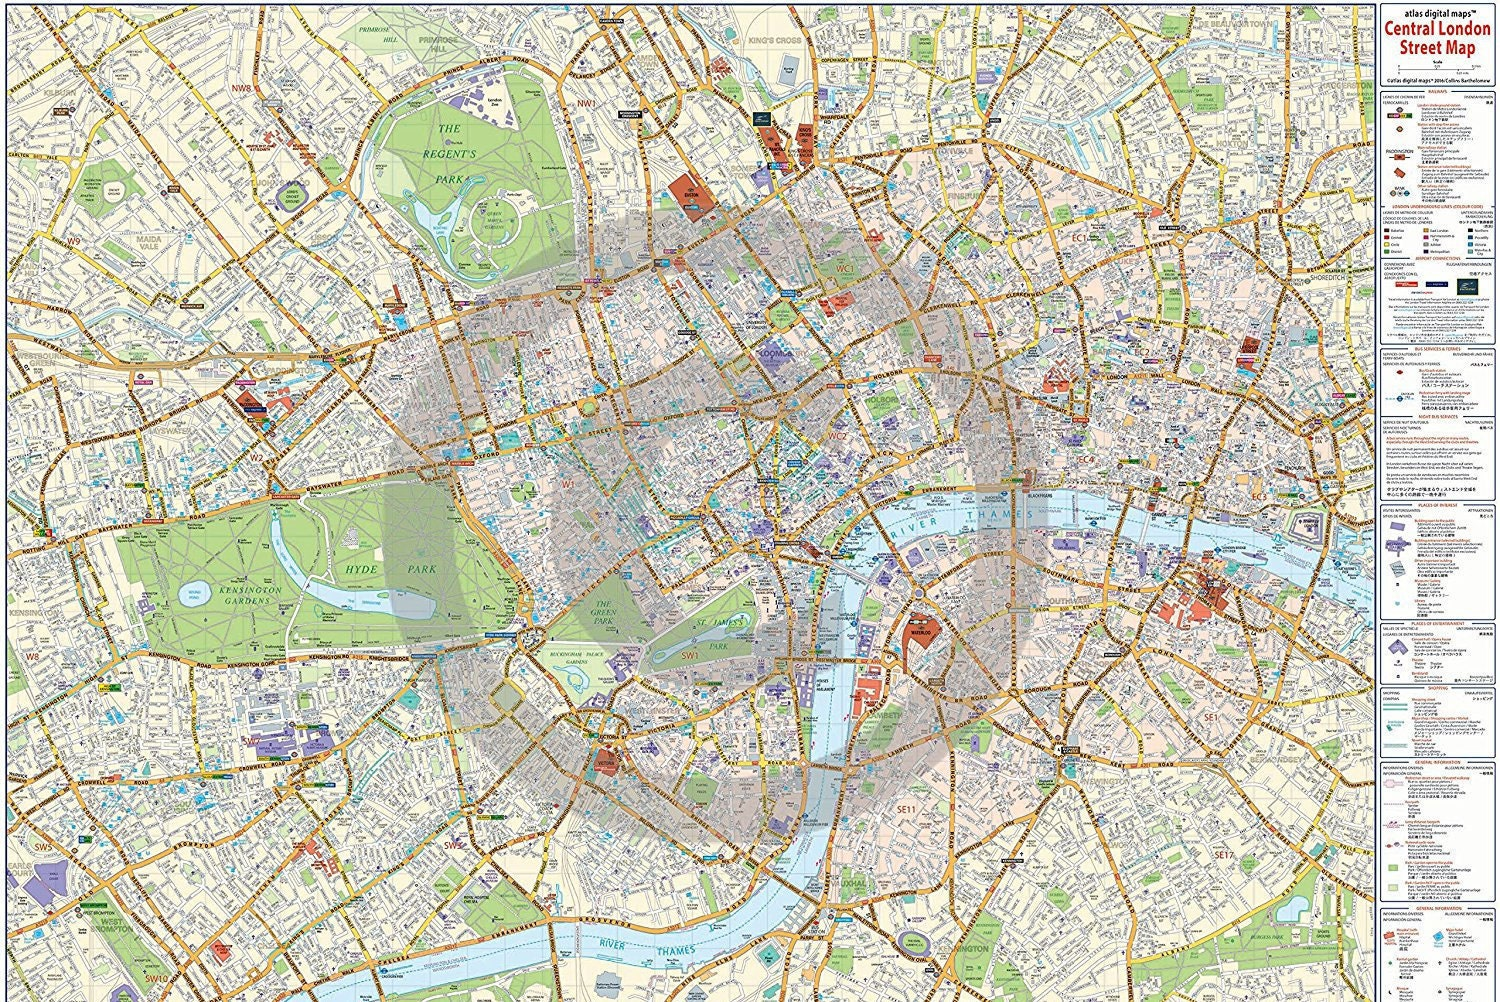 Street Map Of London City Centre.New 2017 Edition London Central Map Poster